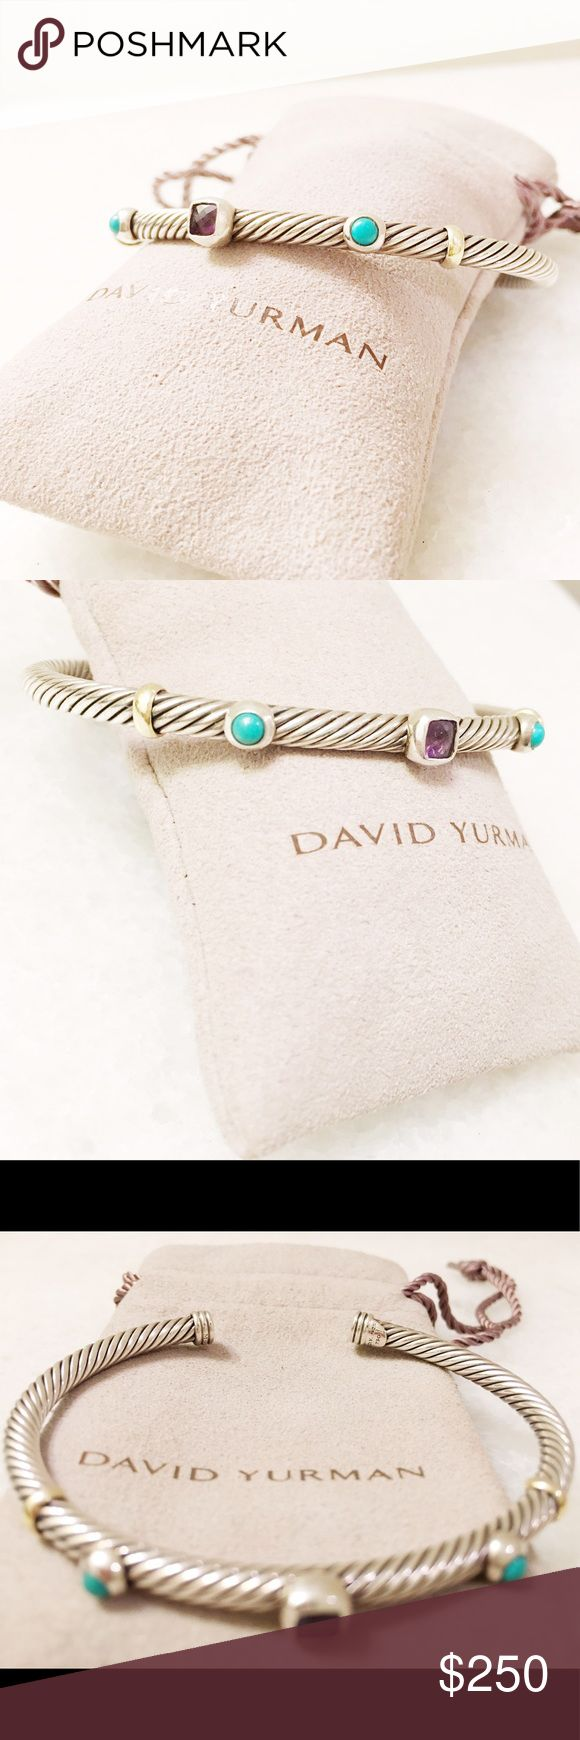 LIMITED EDITION David Yurman Renaissance bracelet Will negotiate 💕David Yurman Renaissance Bracelet with Amethyst, Turquoise, and Gold.   Sterling silver and 18-karat yellow gold Faceted amethyst and cabochon simulated turquoise Cable, 4mm wide  No longer in stock so don't miss this great deal here. Will be heavily discounted from original price of $550 David Yurman Jewelry Bracelets